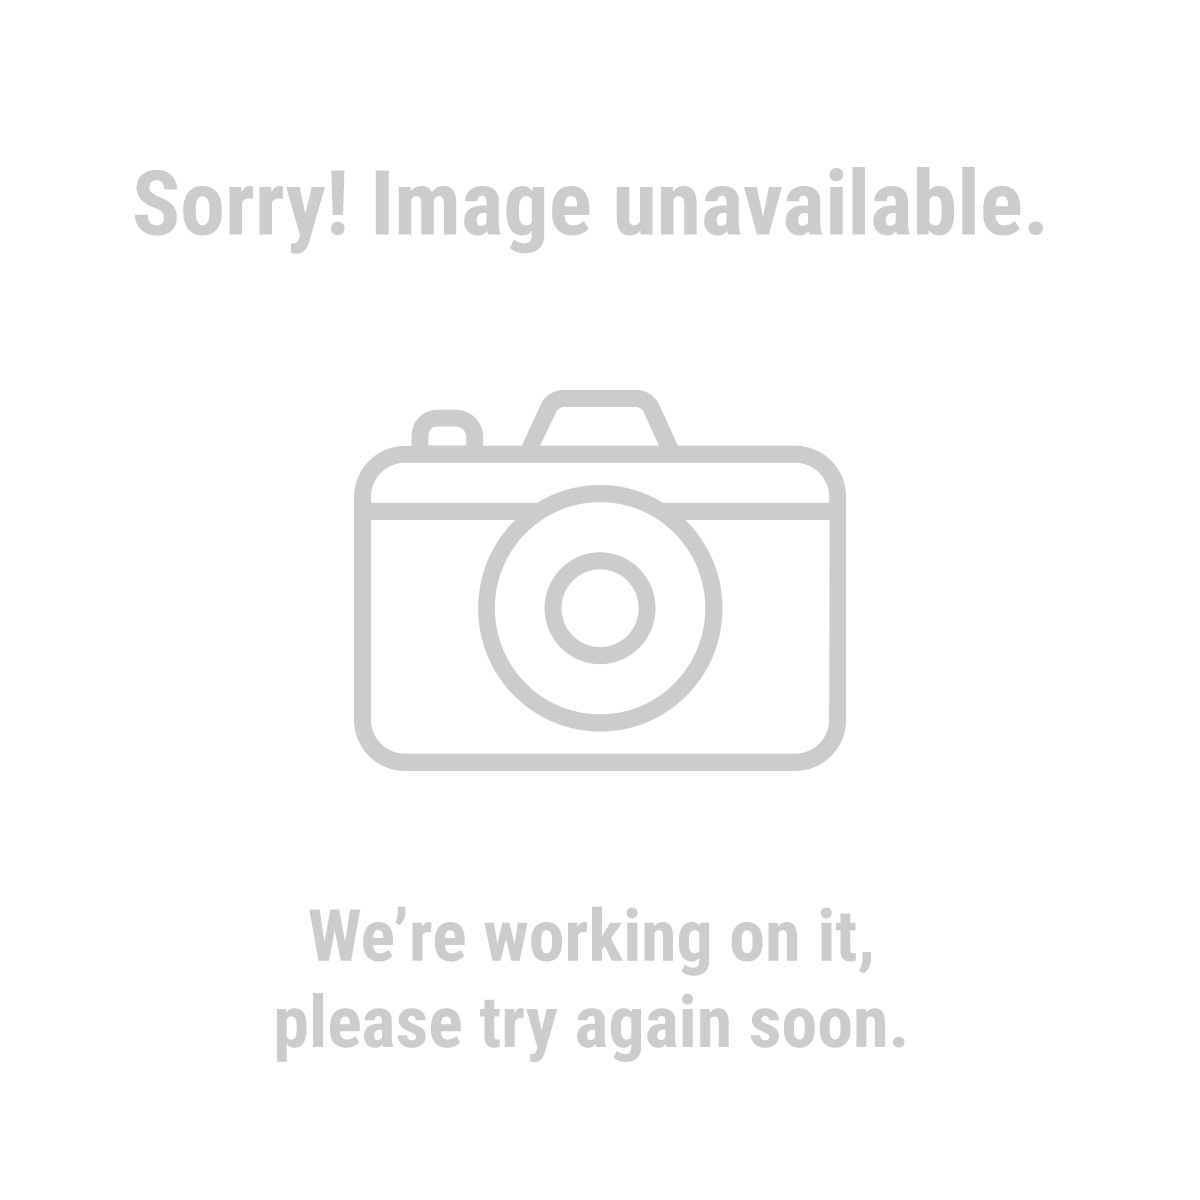 Central Hydraulics® 34032 1/2 and 1 Ton Two Stage Transmission Jack